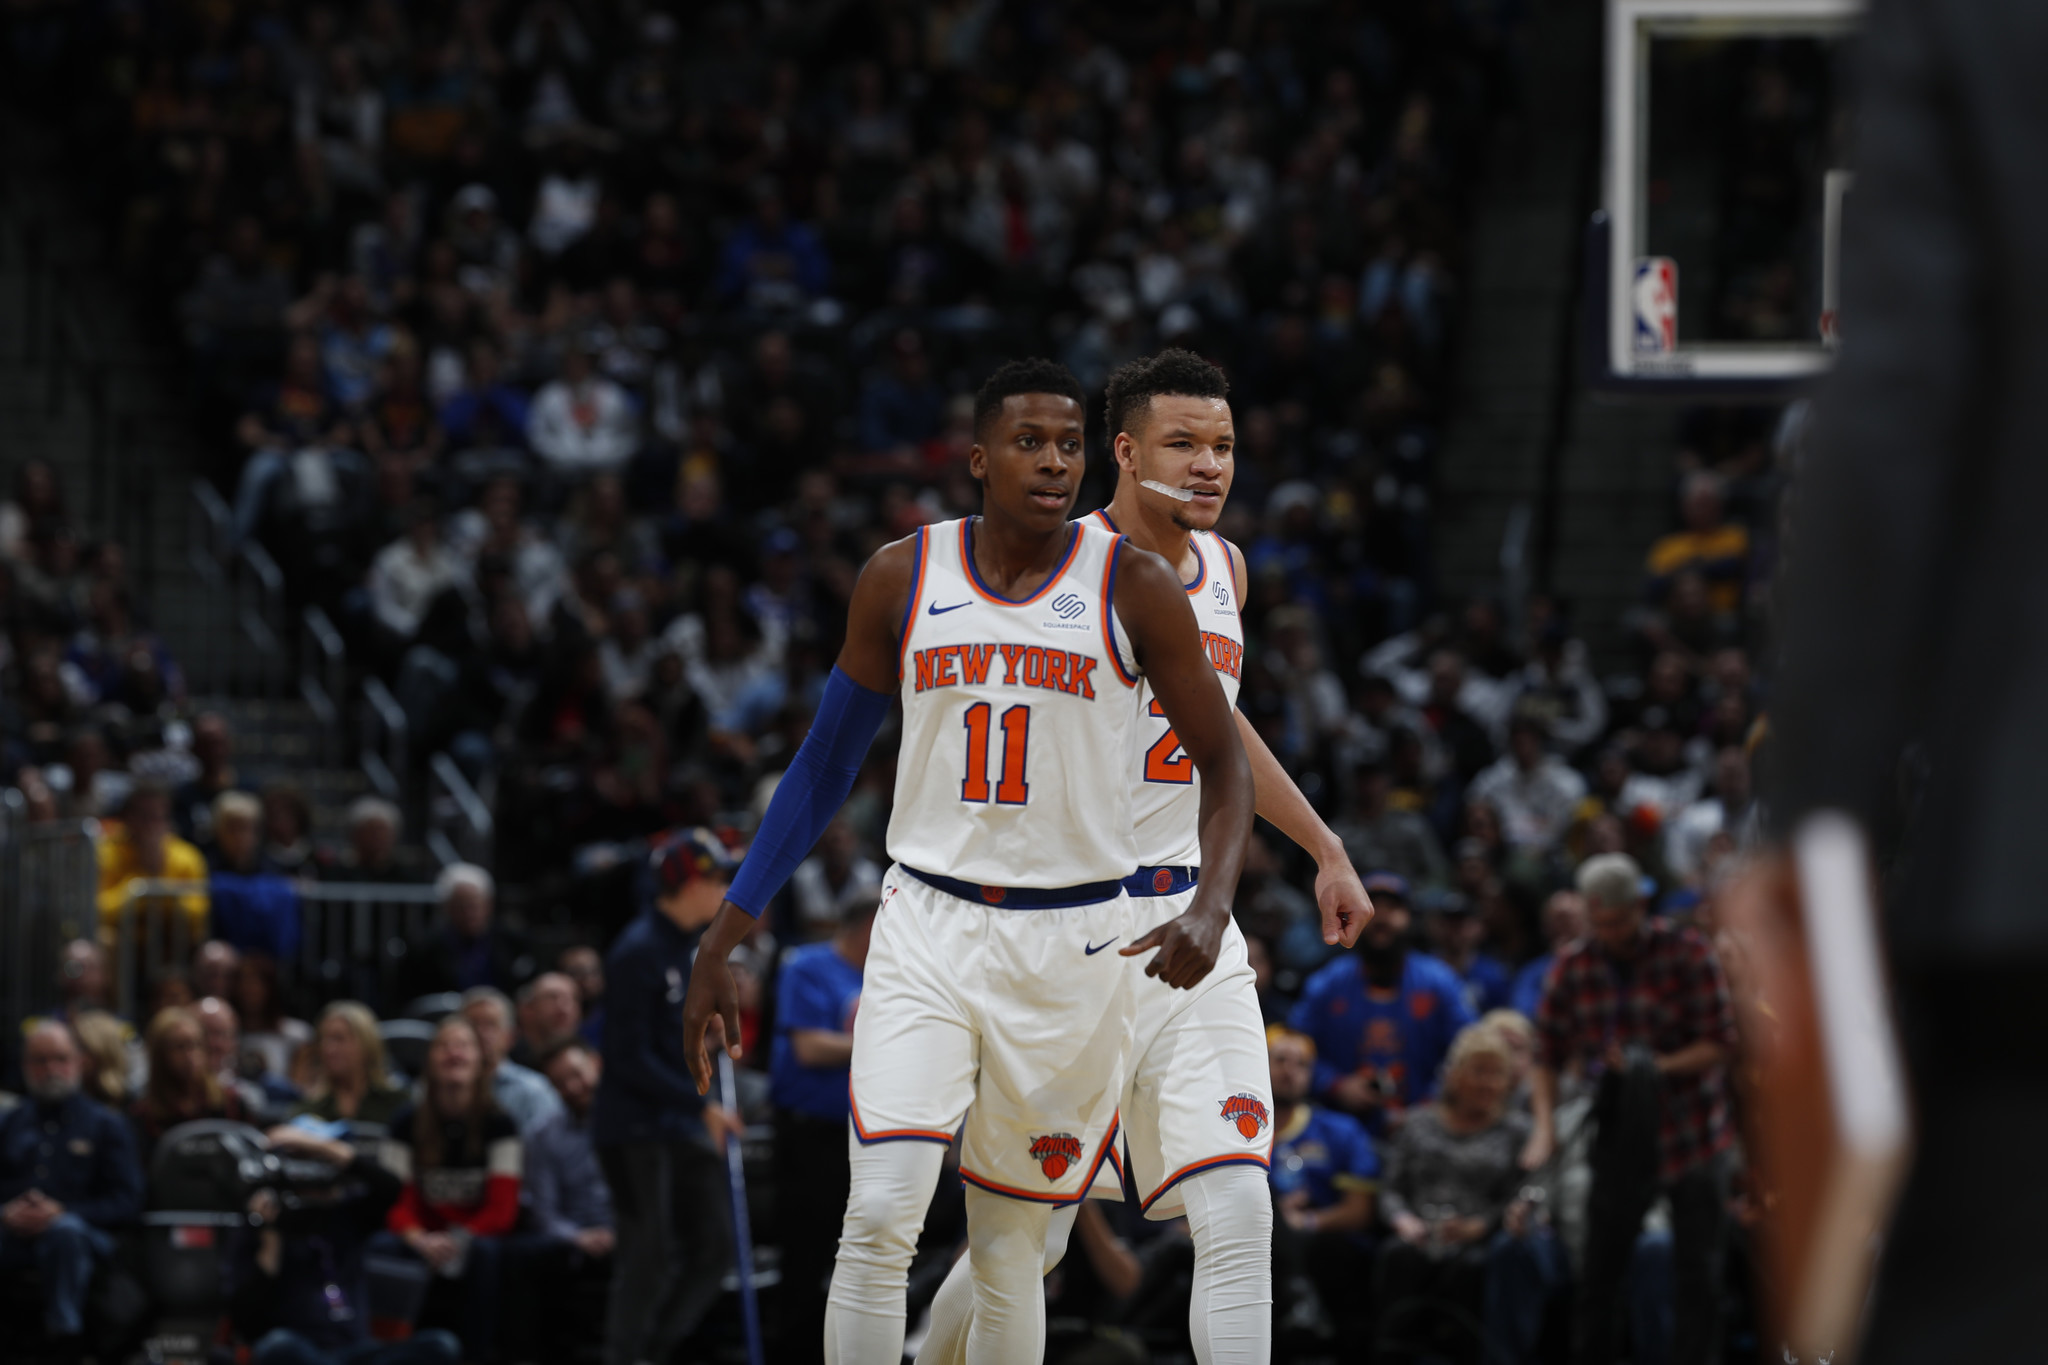 The Knicks future is getting lost in another lost season